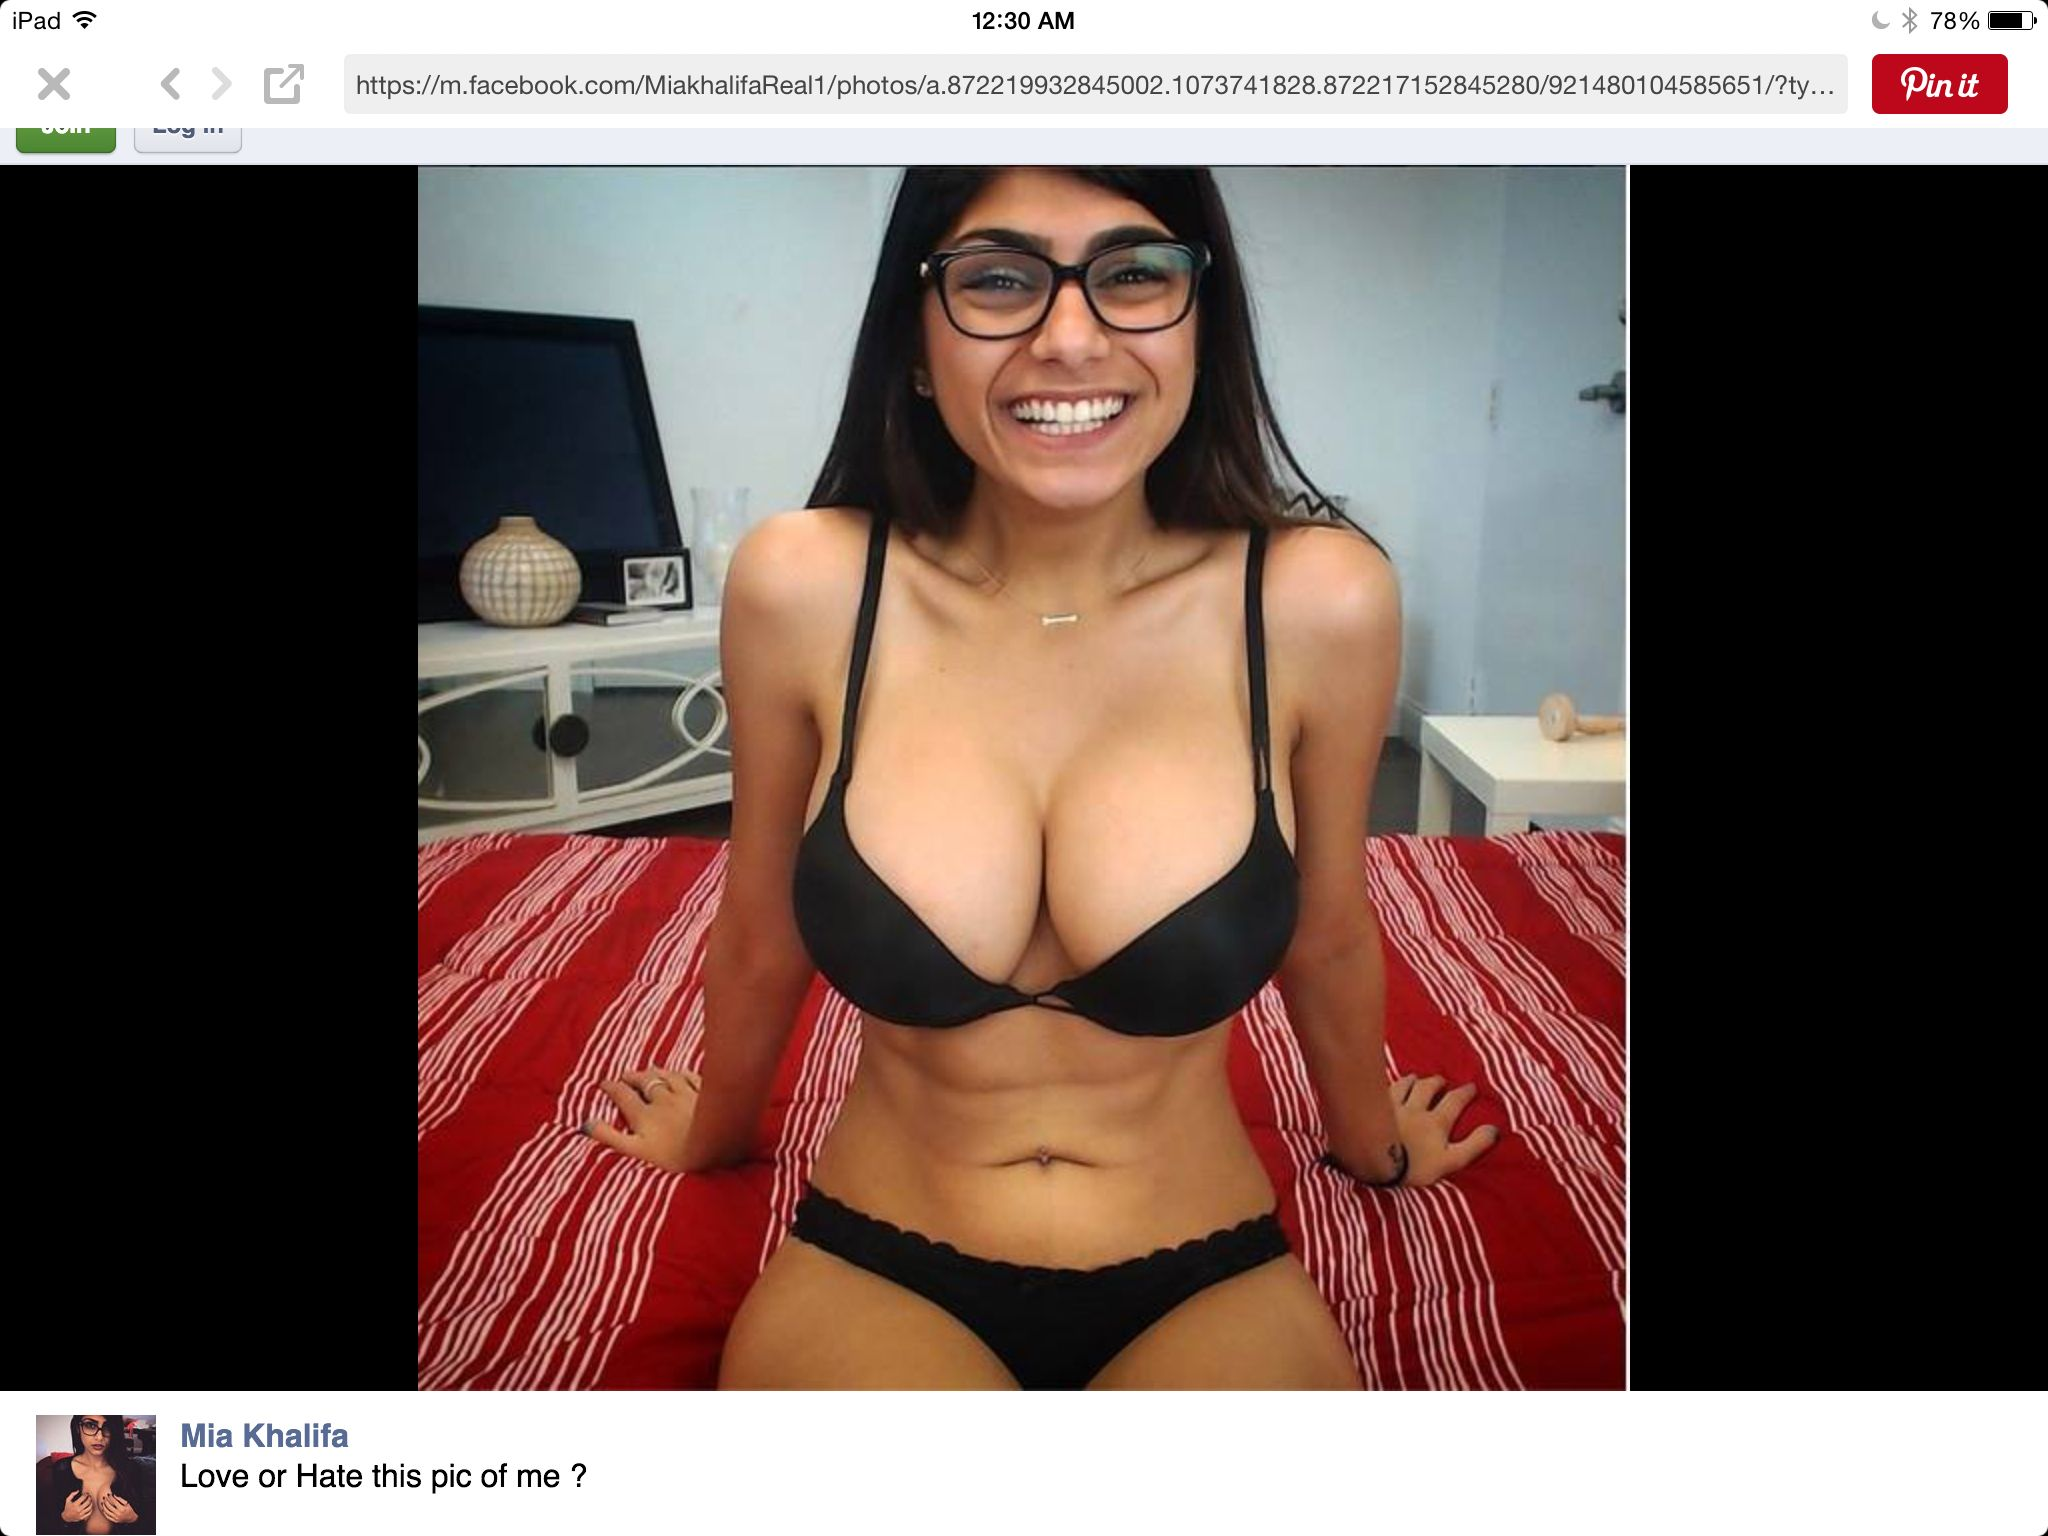 mia khalifa arab sex queen | mia khalifa | pinterest | queens